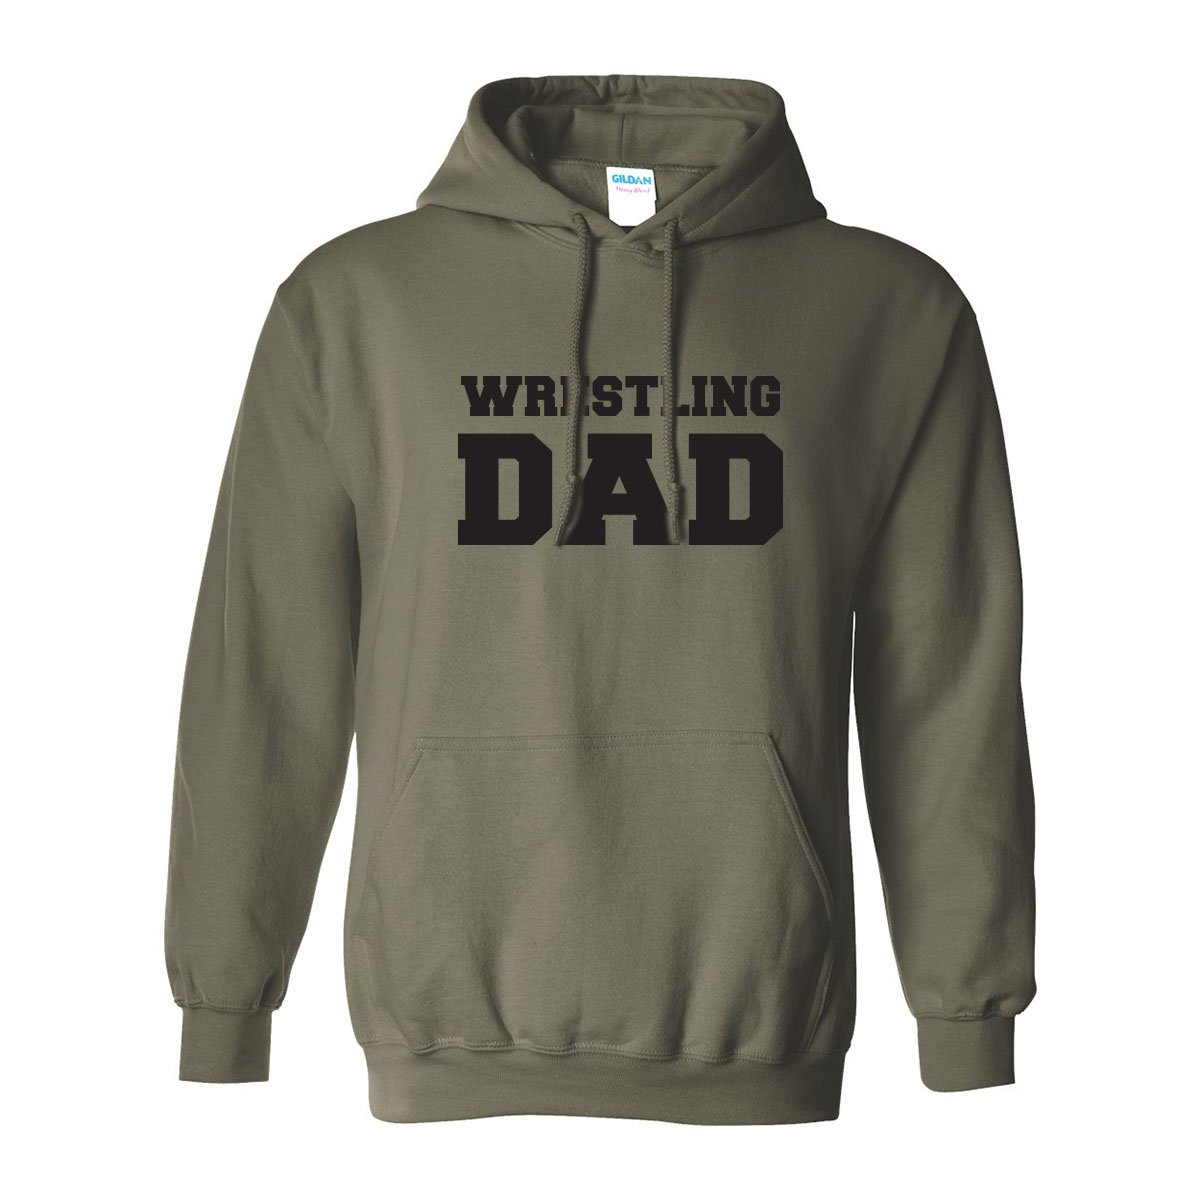 zerogravitee Wrestling Dad Adult Hooded Sweatshirt in Military Green with black text - XXXX-Large